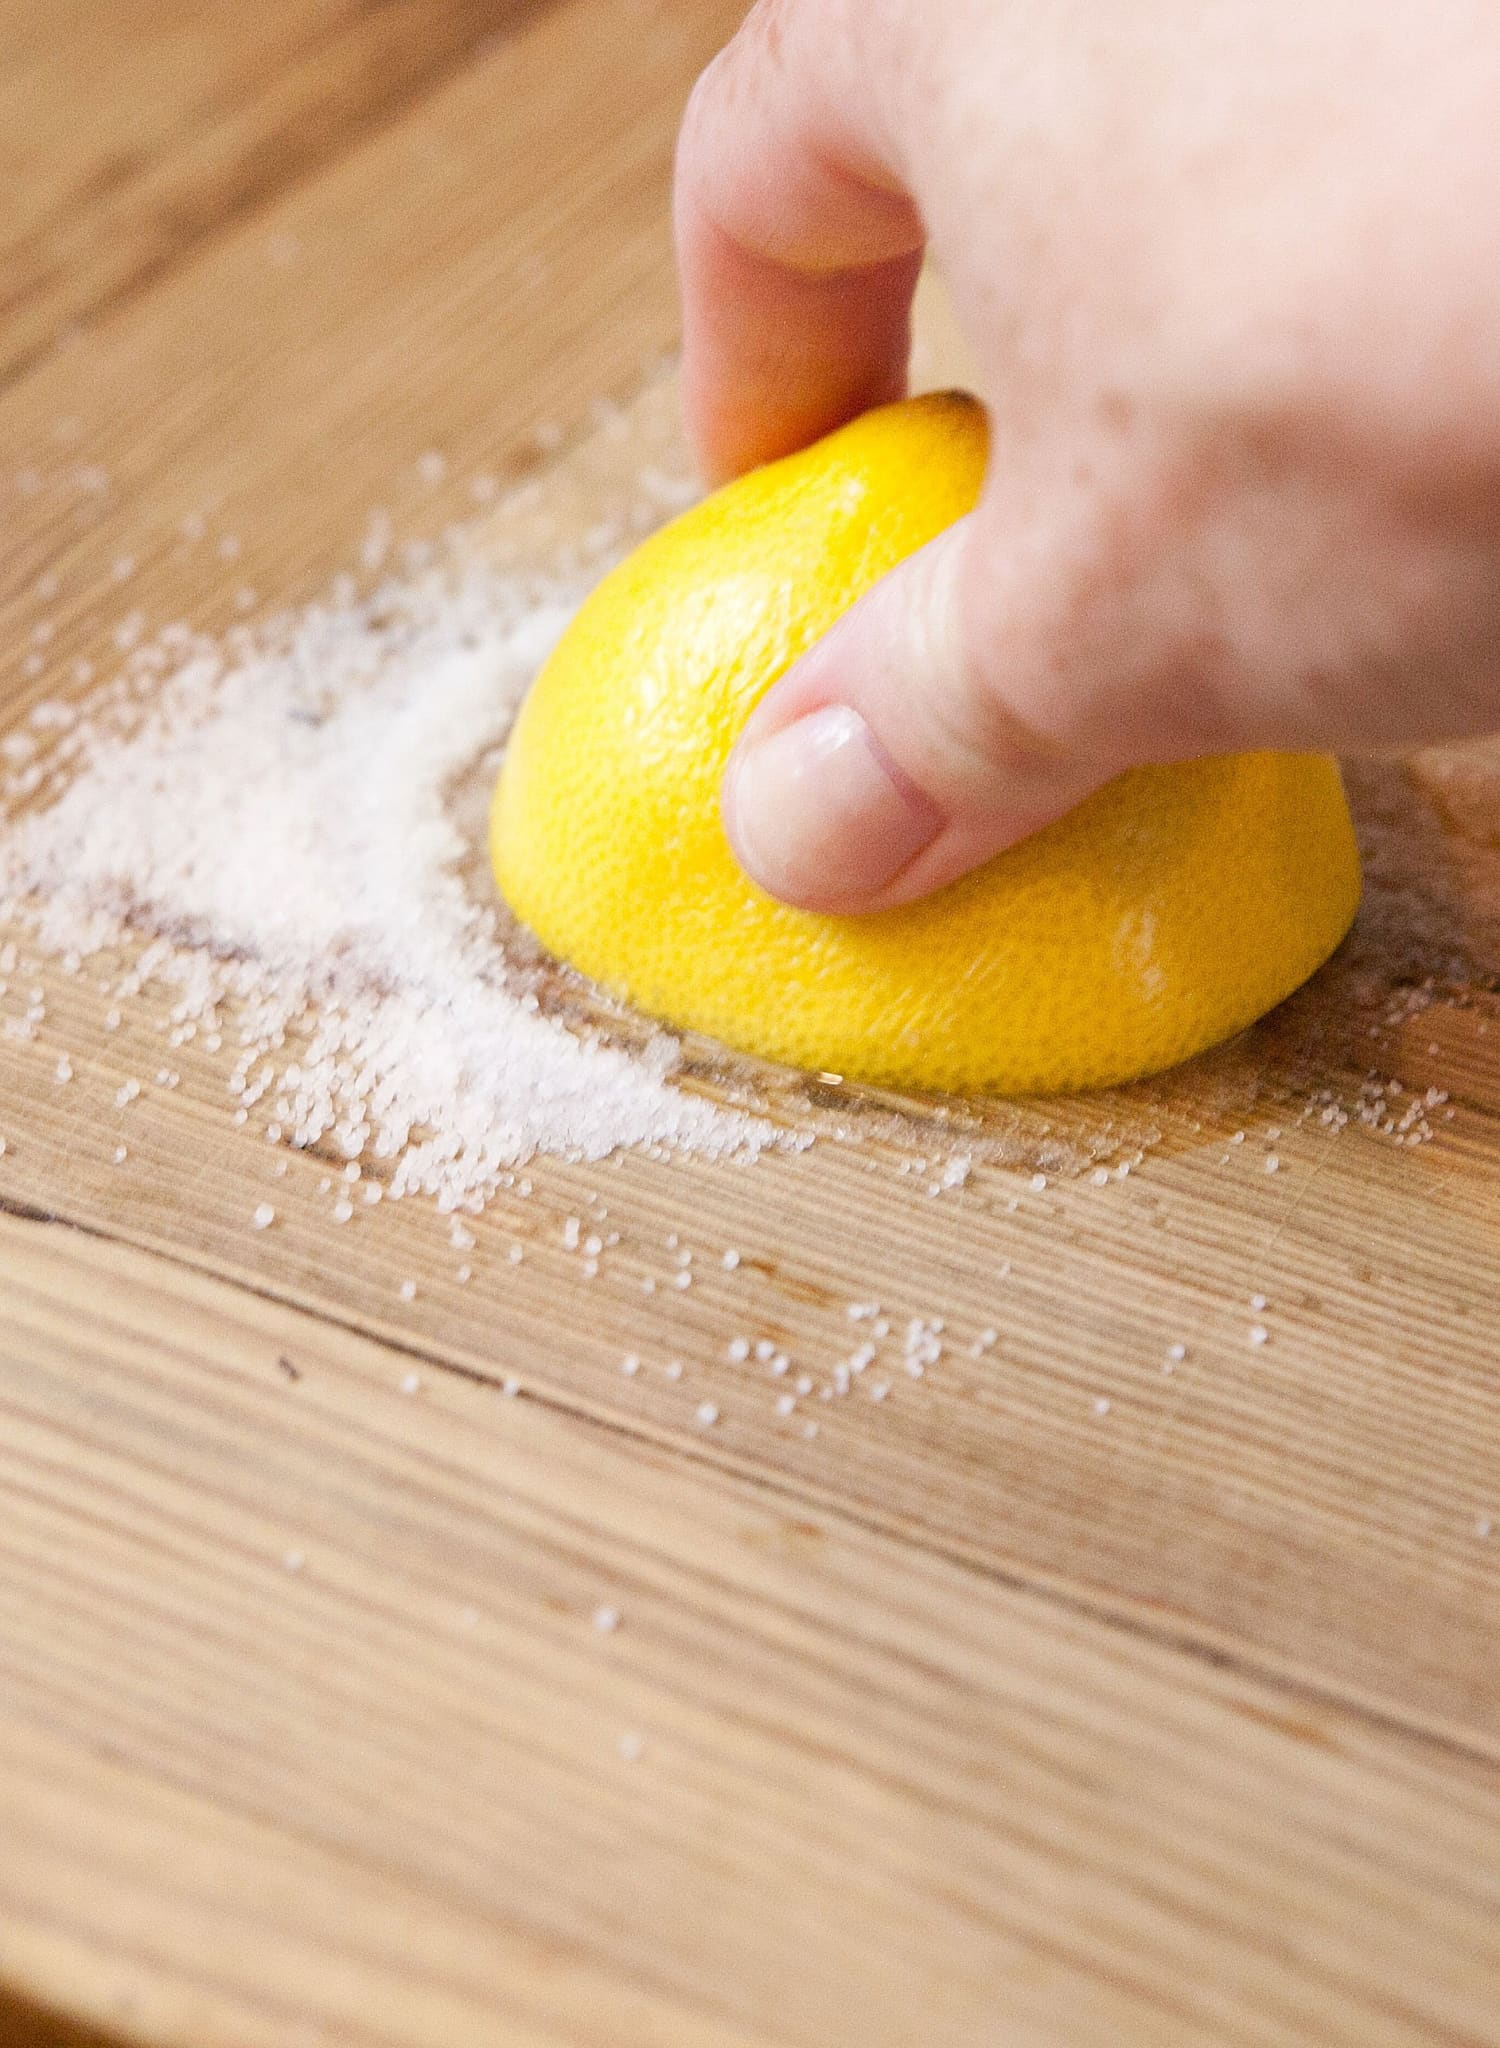 How To Clean A Wooden Cutting Board With Lemon And Salt